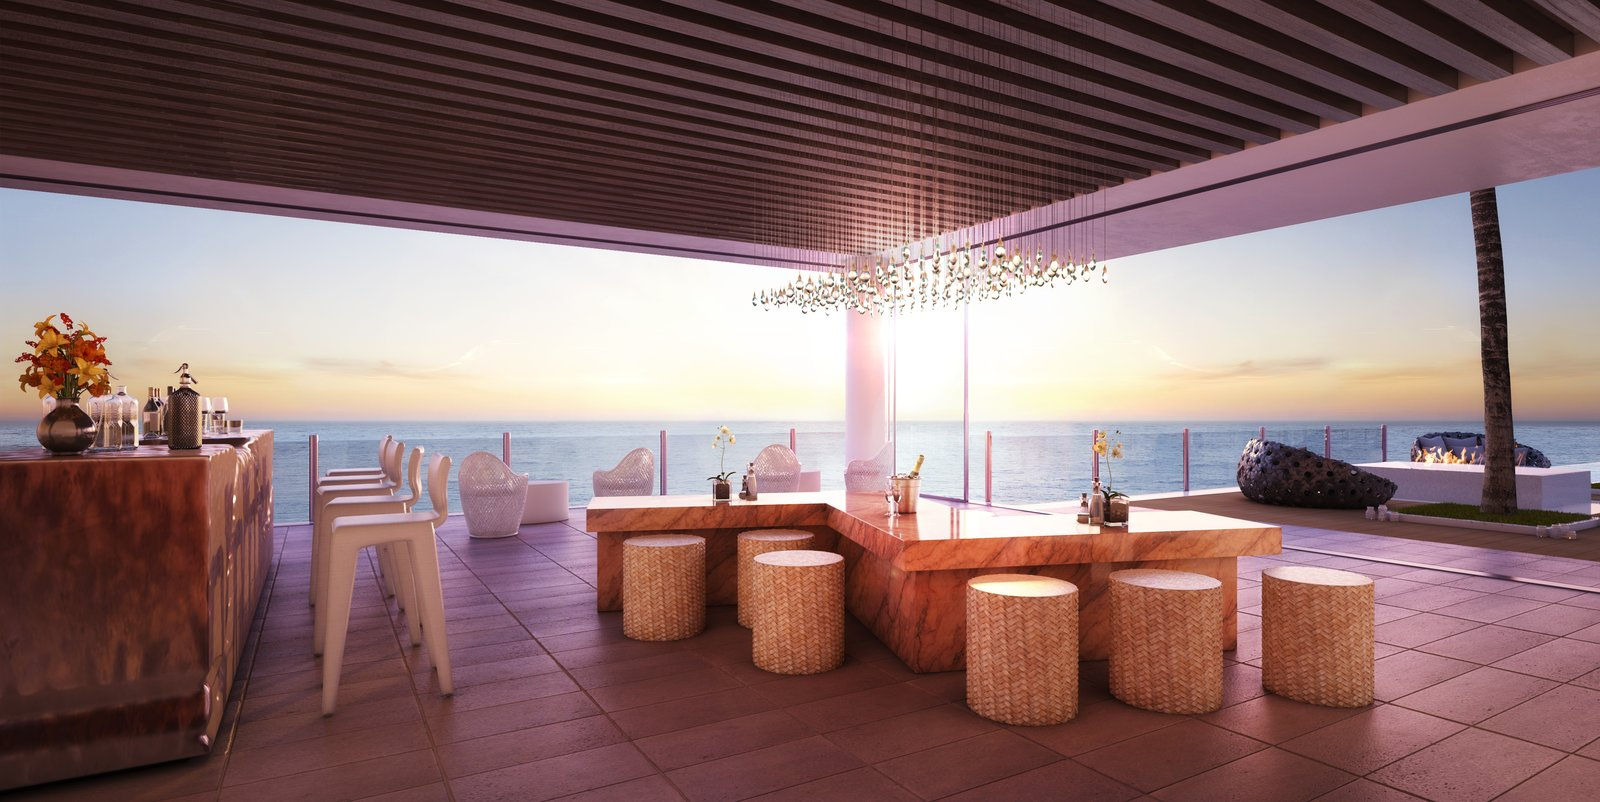 Waiea residence bar lounge  Photo 5 of 5 in Nobu Honolulu at Ward Village is Hawaii's Most Sought-After New Restaurant